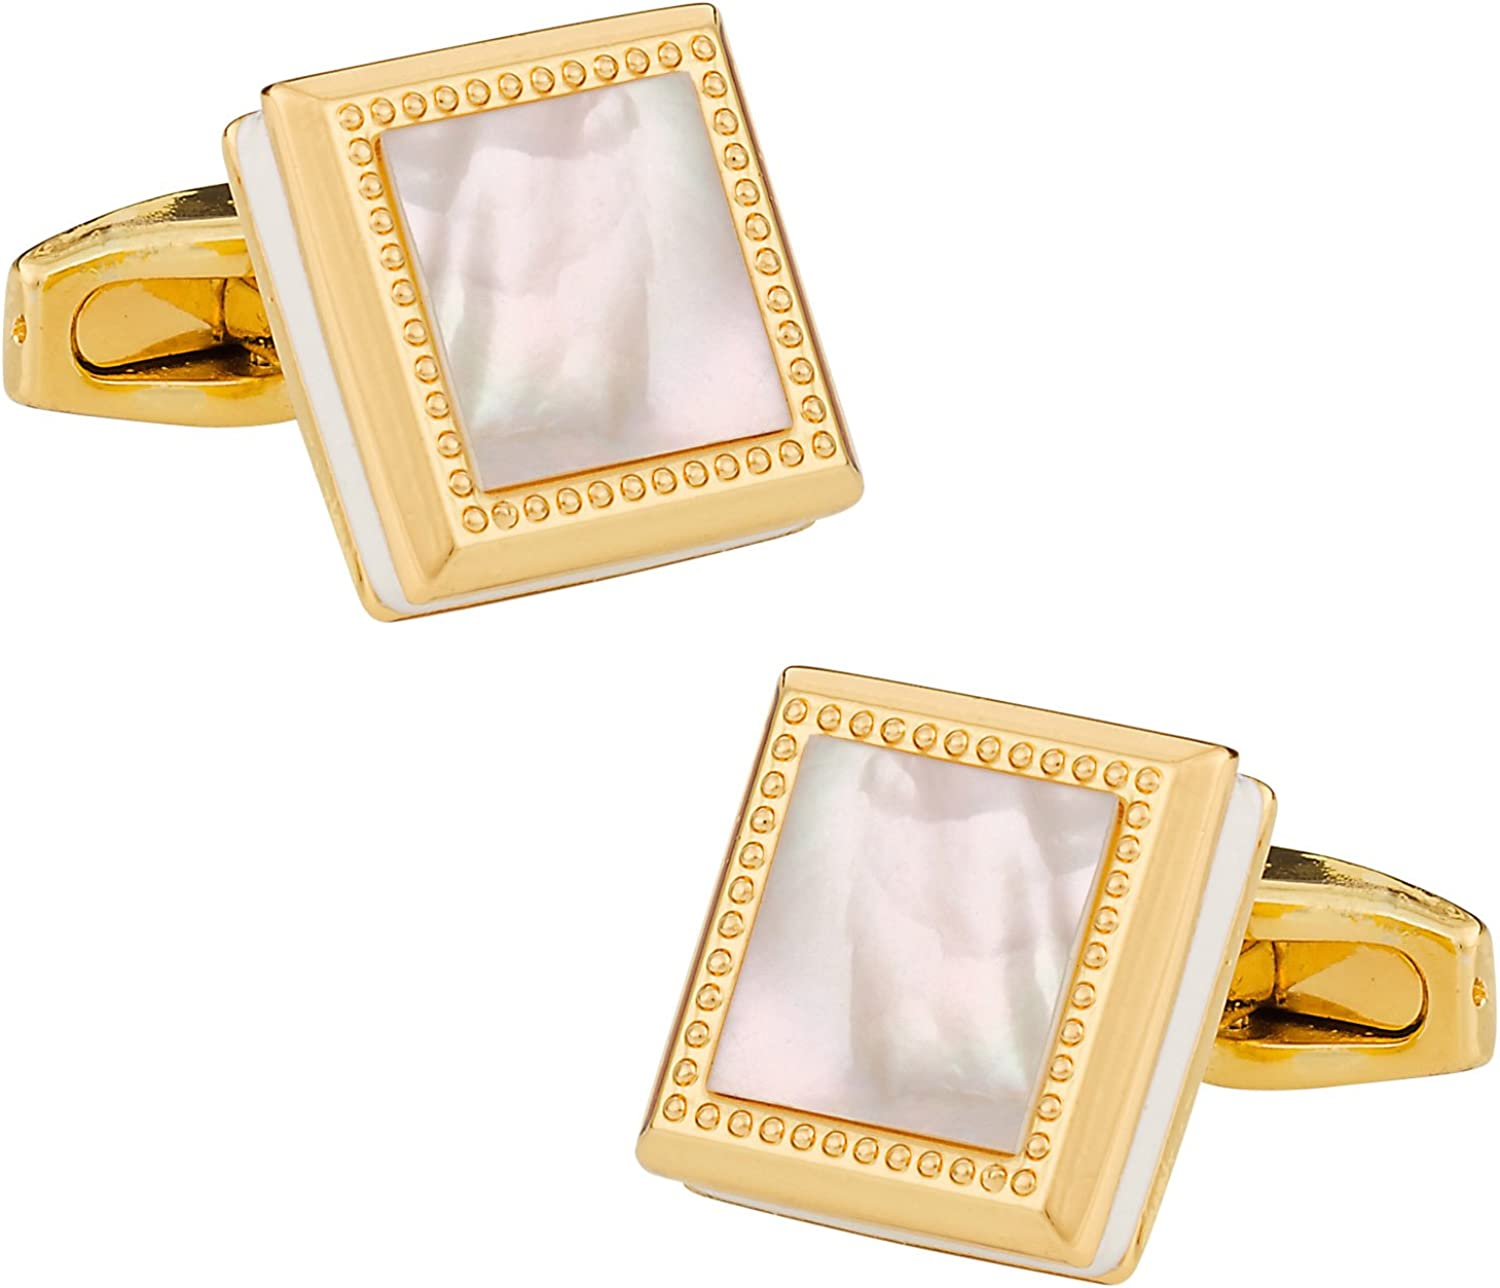 Cuff-Daddy Gold Mother of Pearl Square Cufflinks with Presentation Box